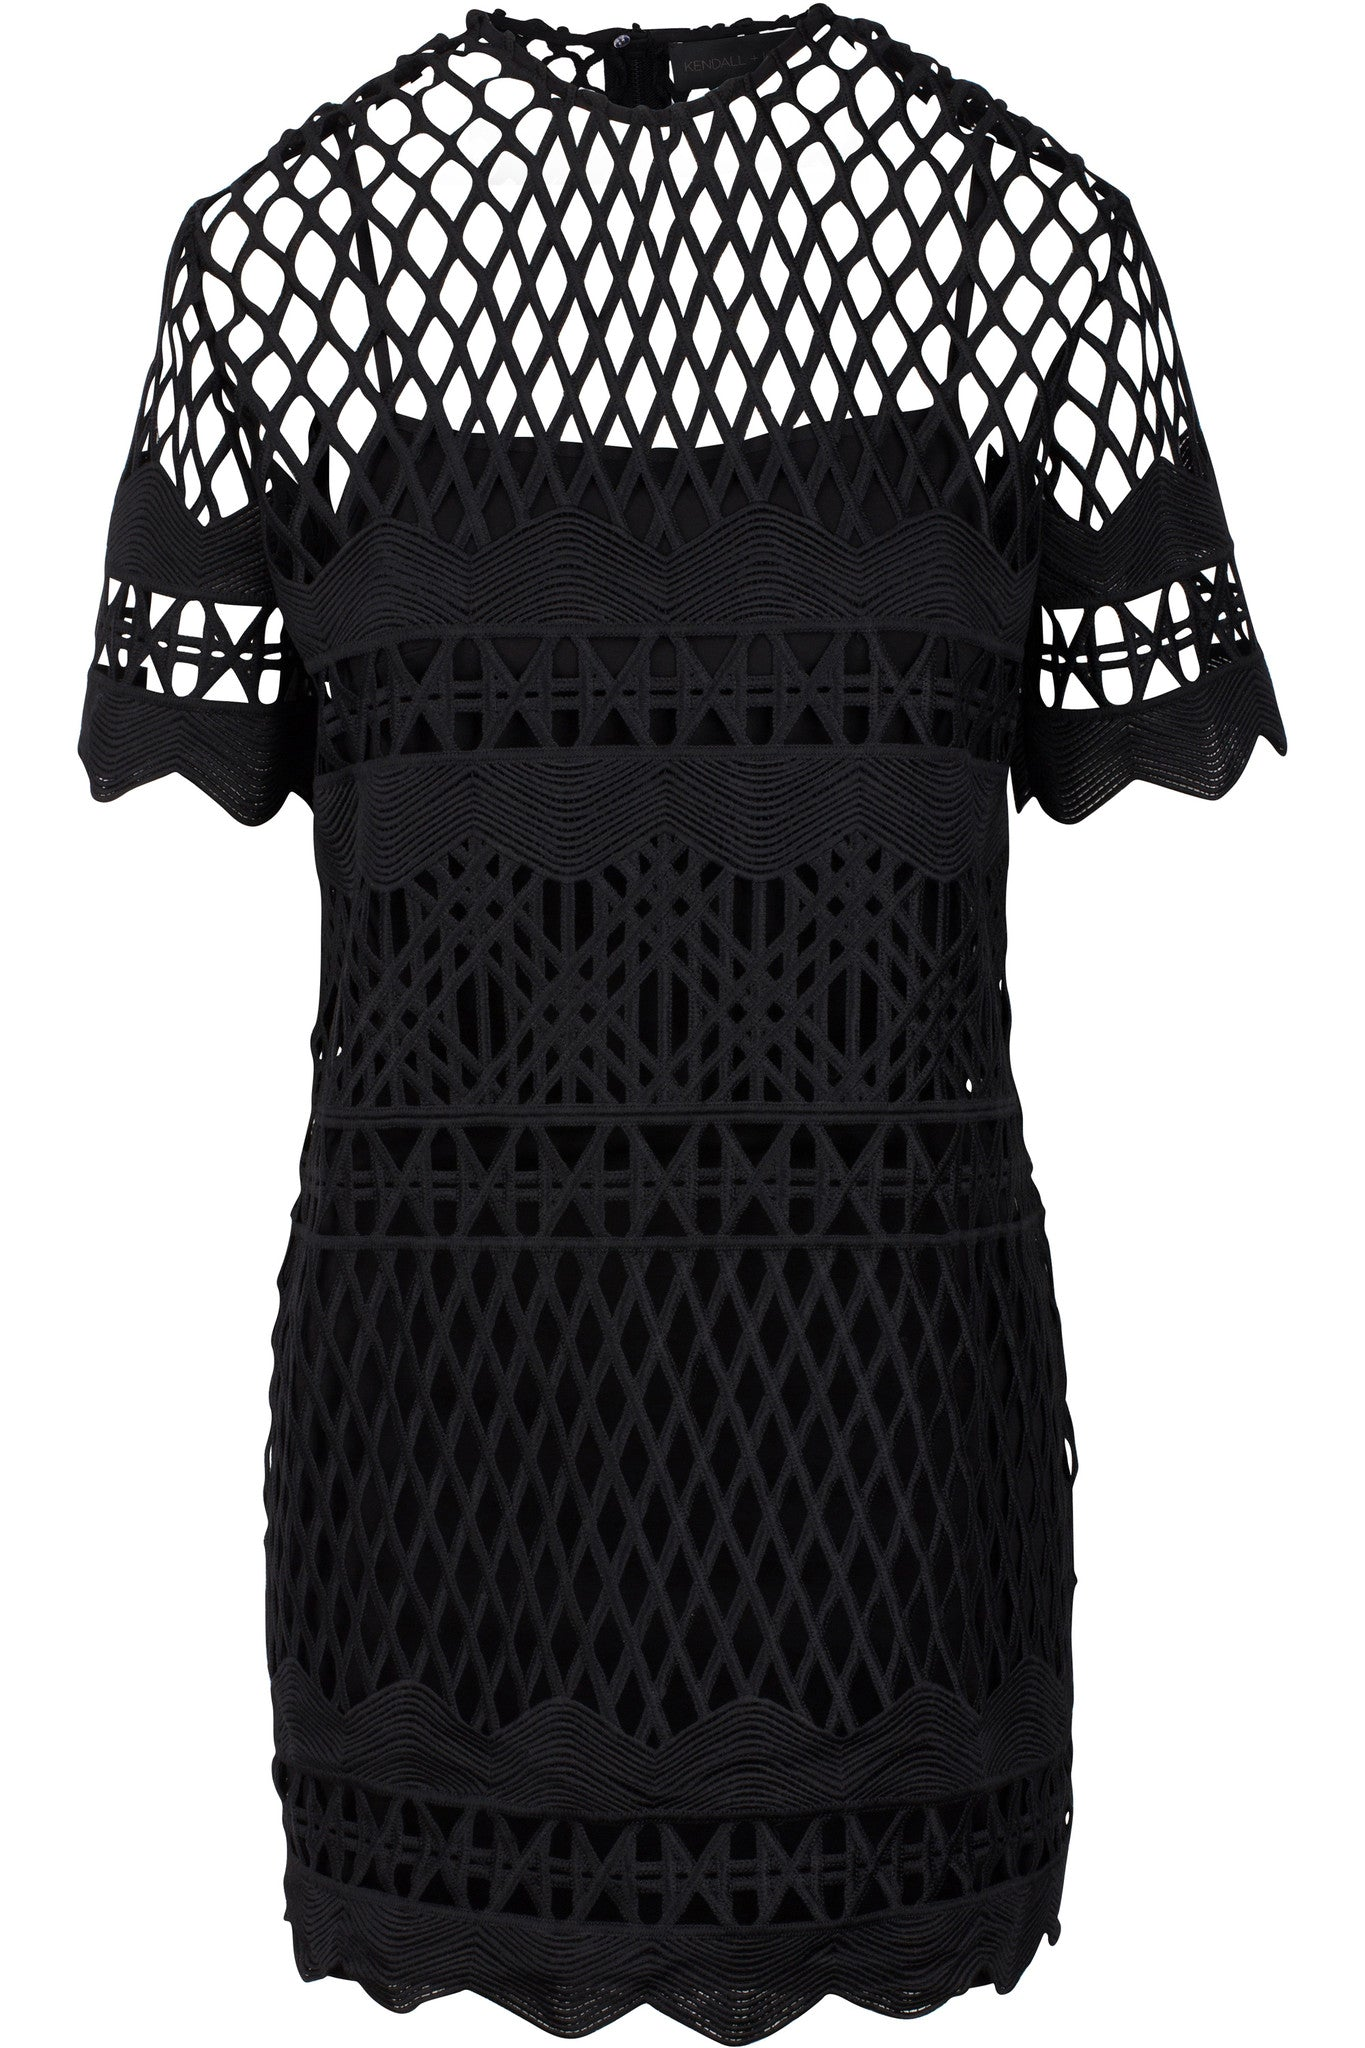 CROCHET A-LINE DRESS BLACK DRESSES by KENDALL + KYLIE